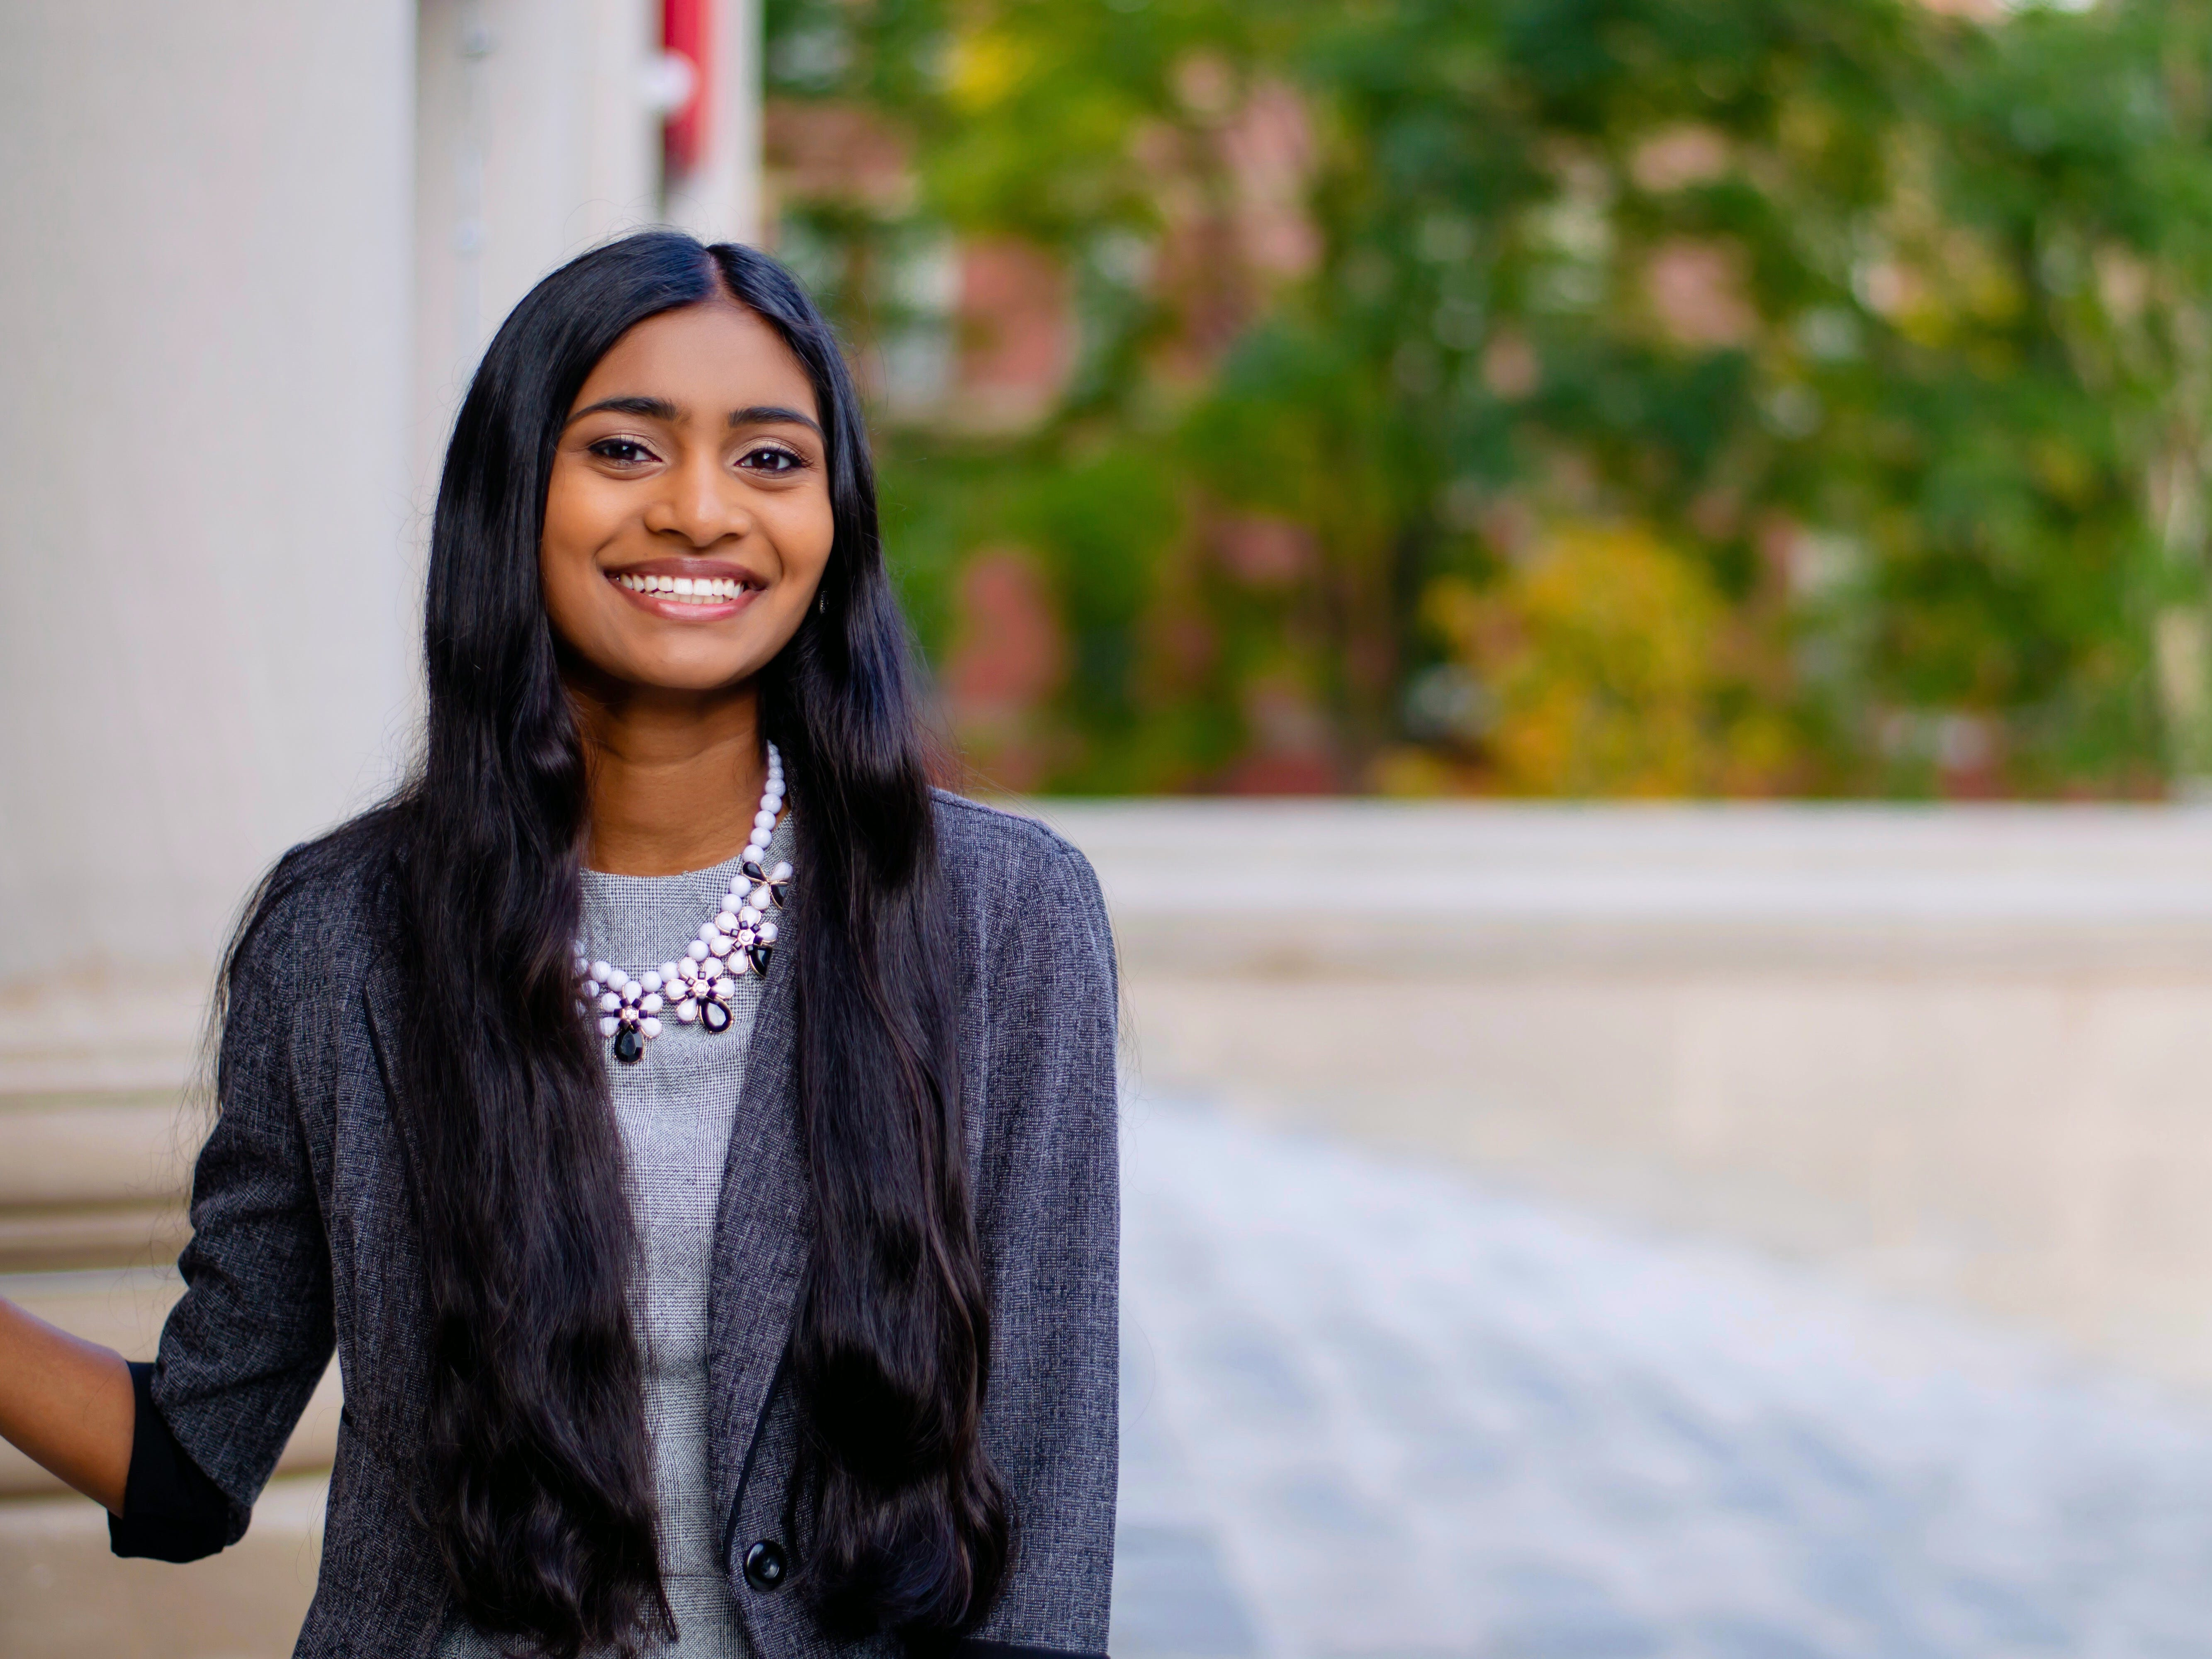 Keep an eye on this young Iowan: Being president of Harvard's student body is just the beginning